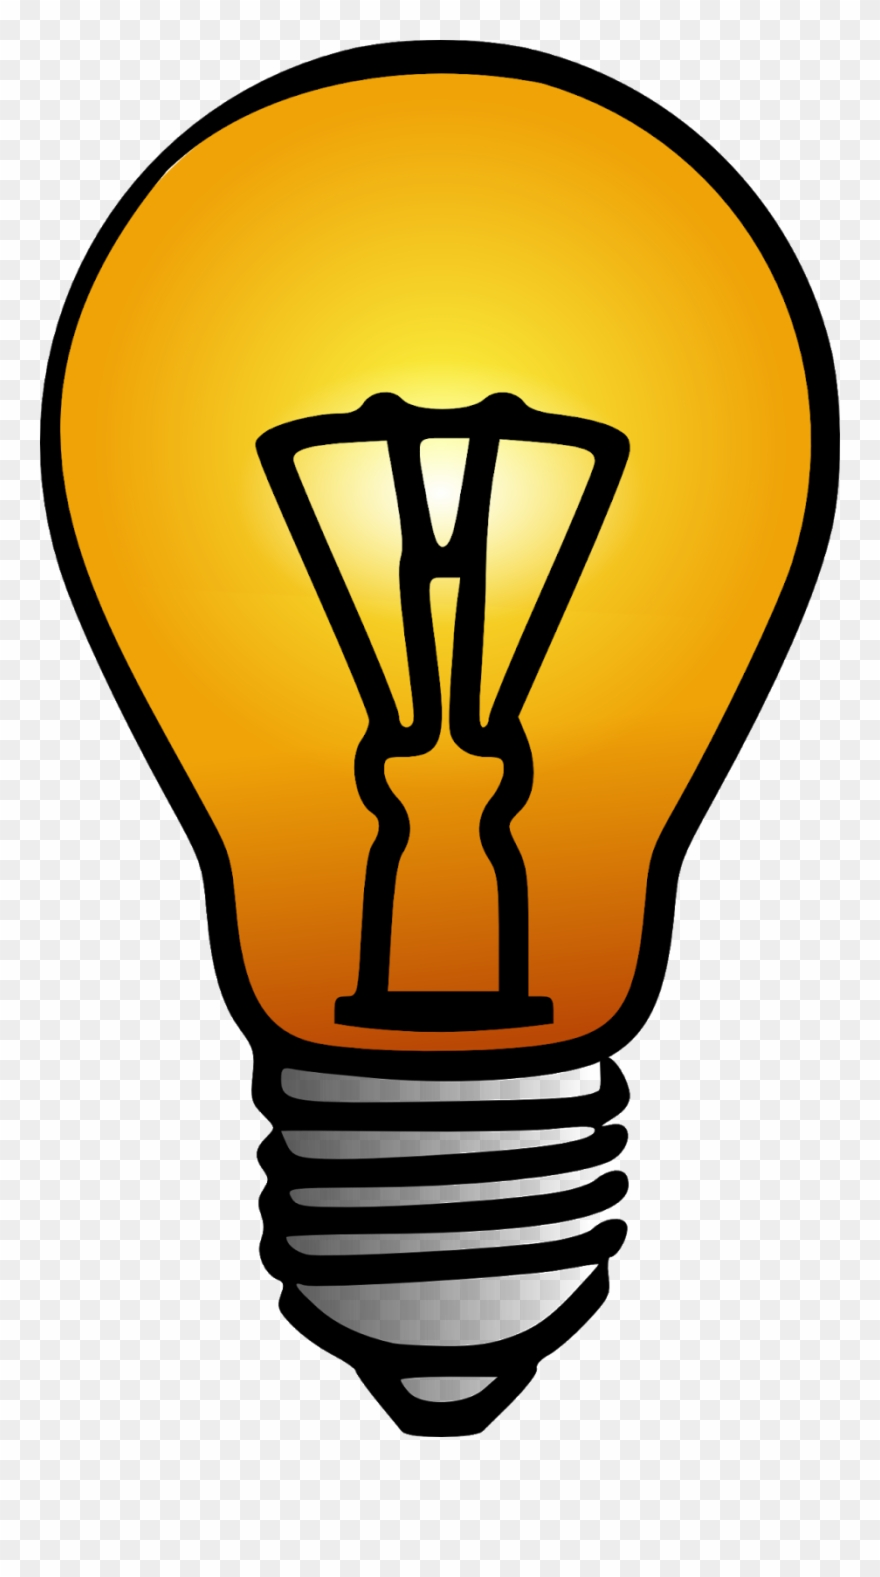 png freeuse Situation bulb png download. Hypothesis clipart.